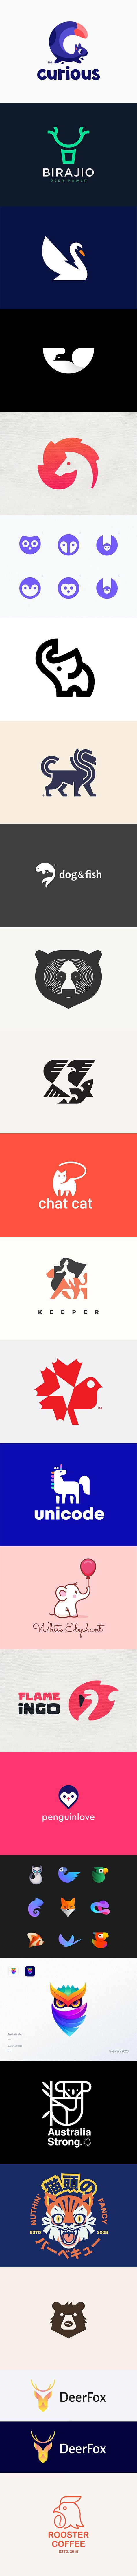 25 Fantastic Collections of Animal Logos 2020